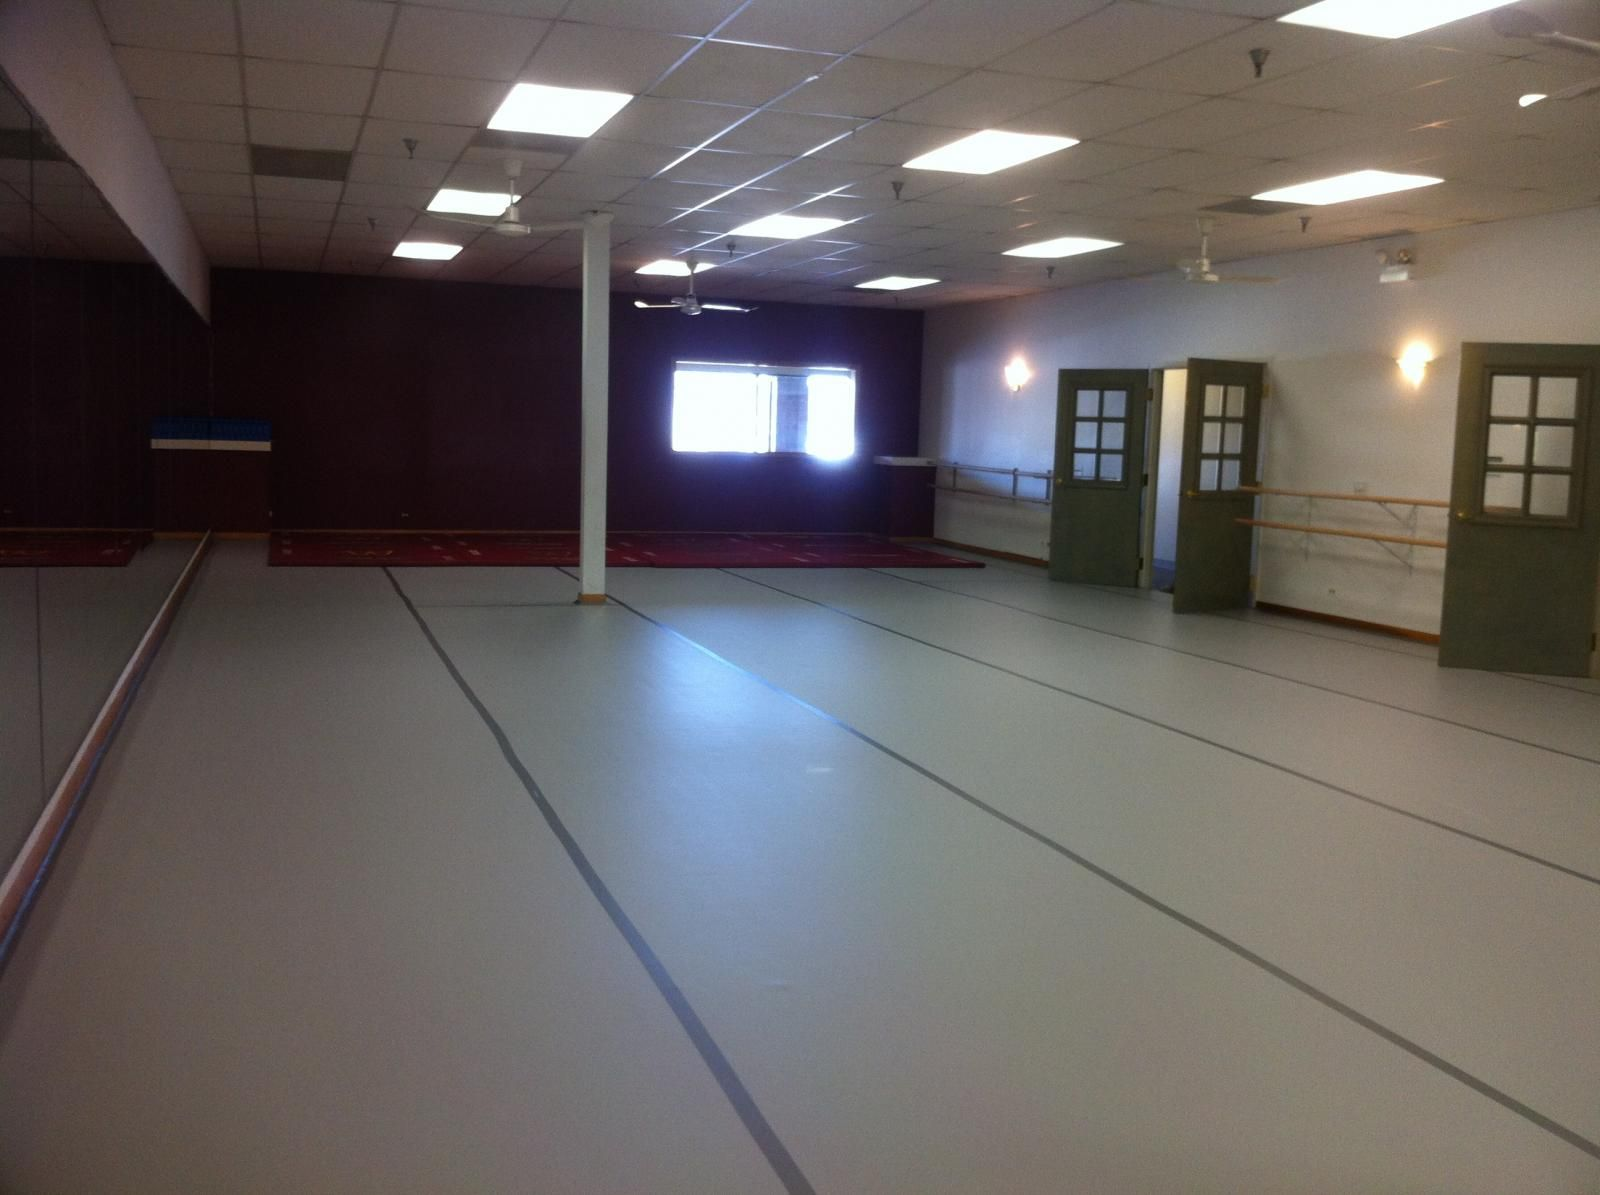 inspirations rent greatmats los sale flooring tampa and covering rental dance of tiles july new marley stunning colorado tape angeles tapemarley full johannesburgmarley picture mats specialty yorke black tampamarley floor size